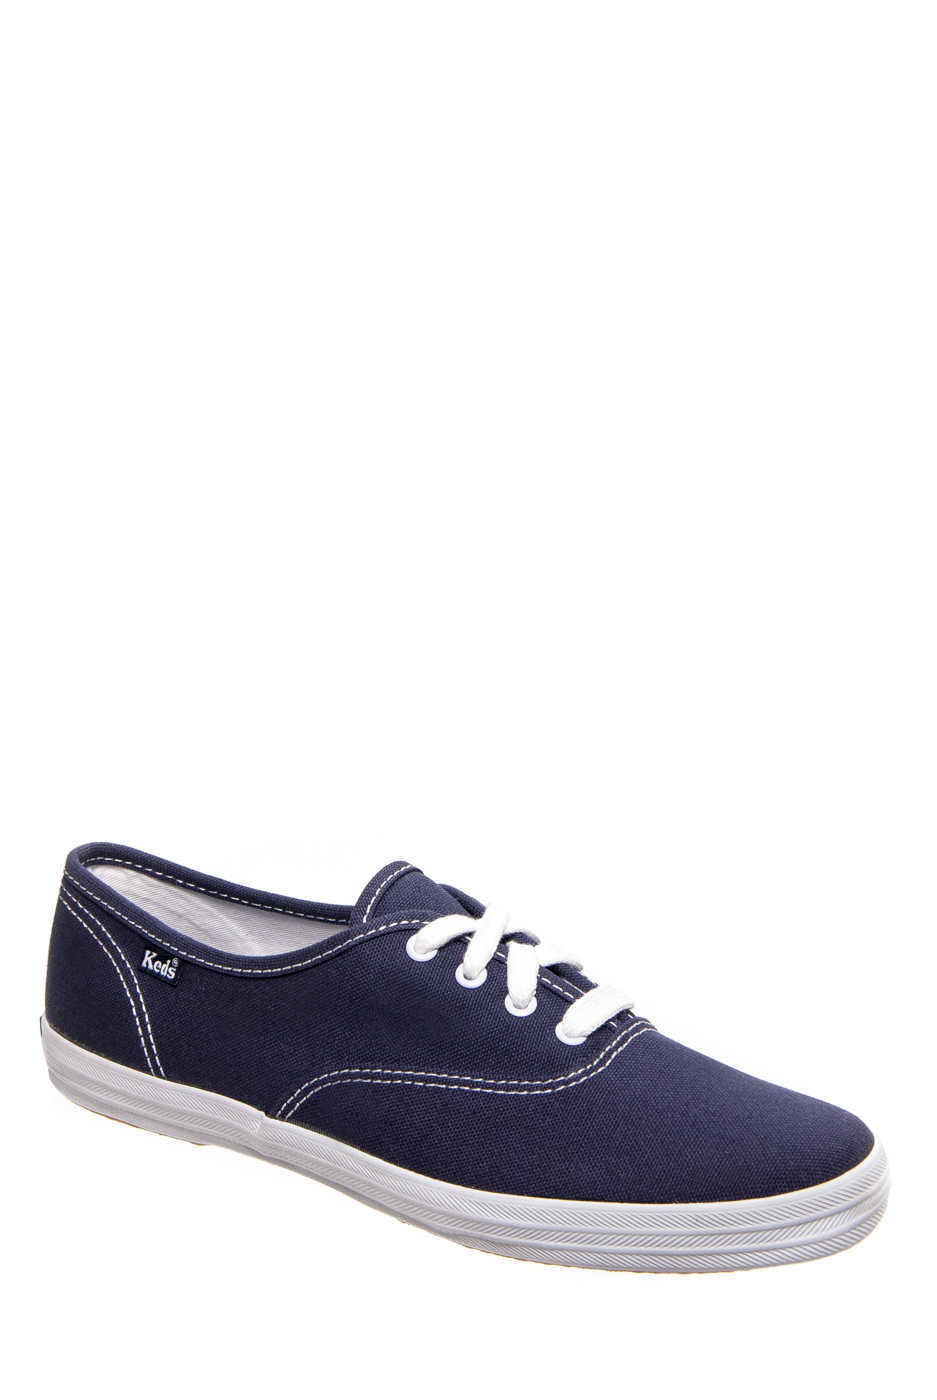 KEDS Champion Low Top Sneakers - Navy